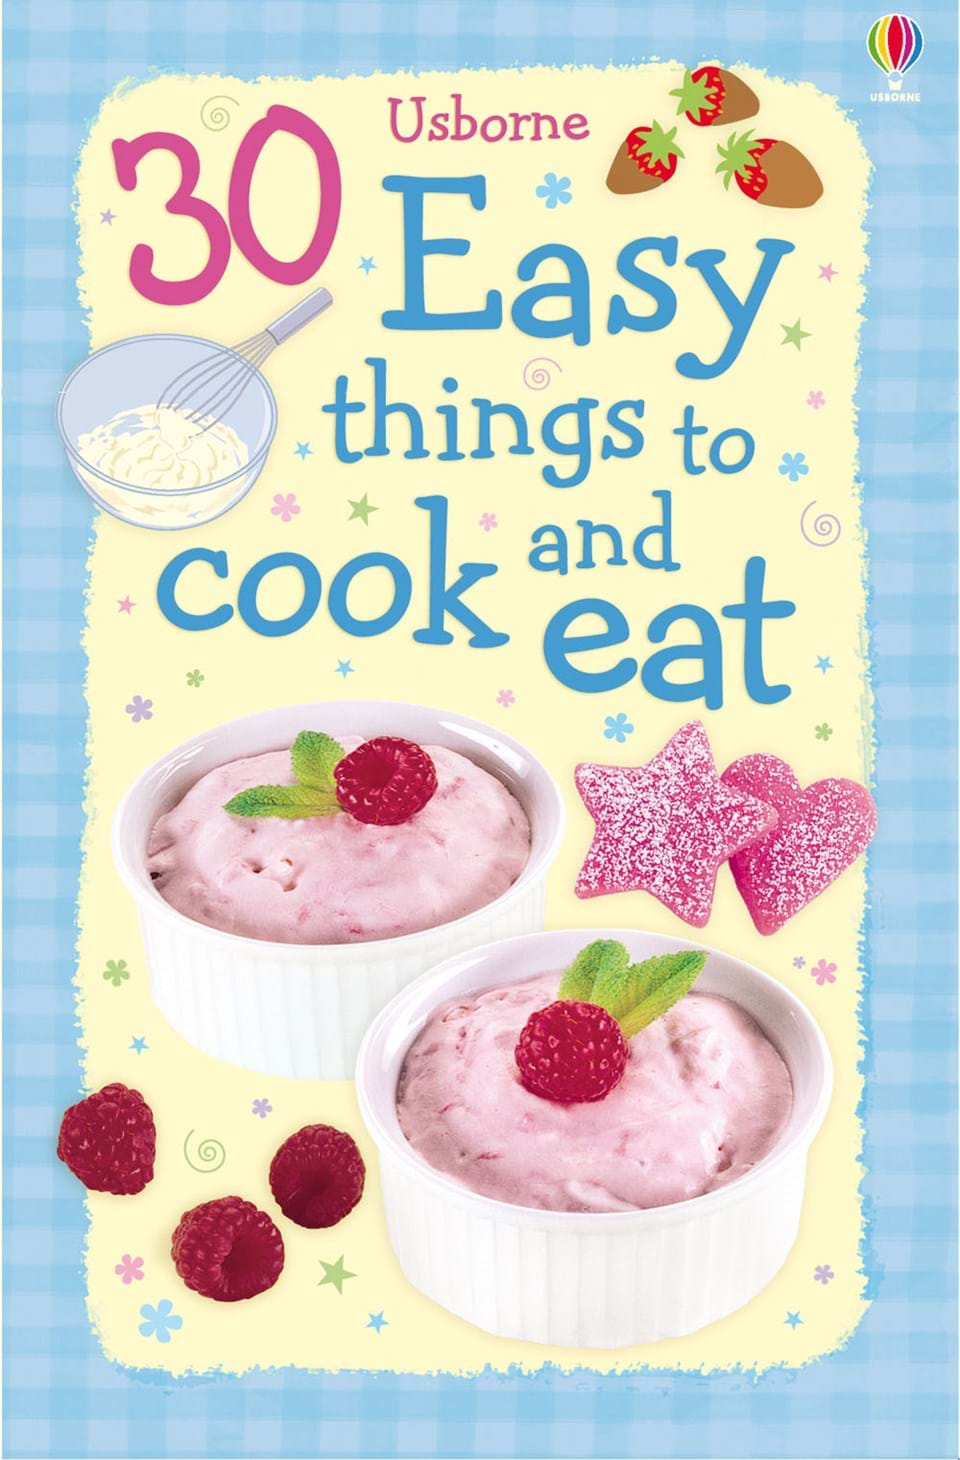 30 Easy Things To Cook And Eat At Usborne Books At Home